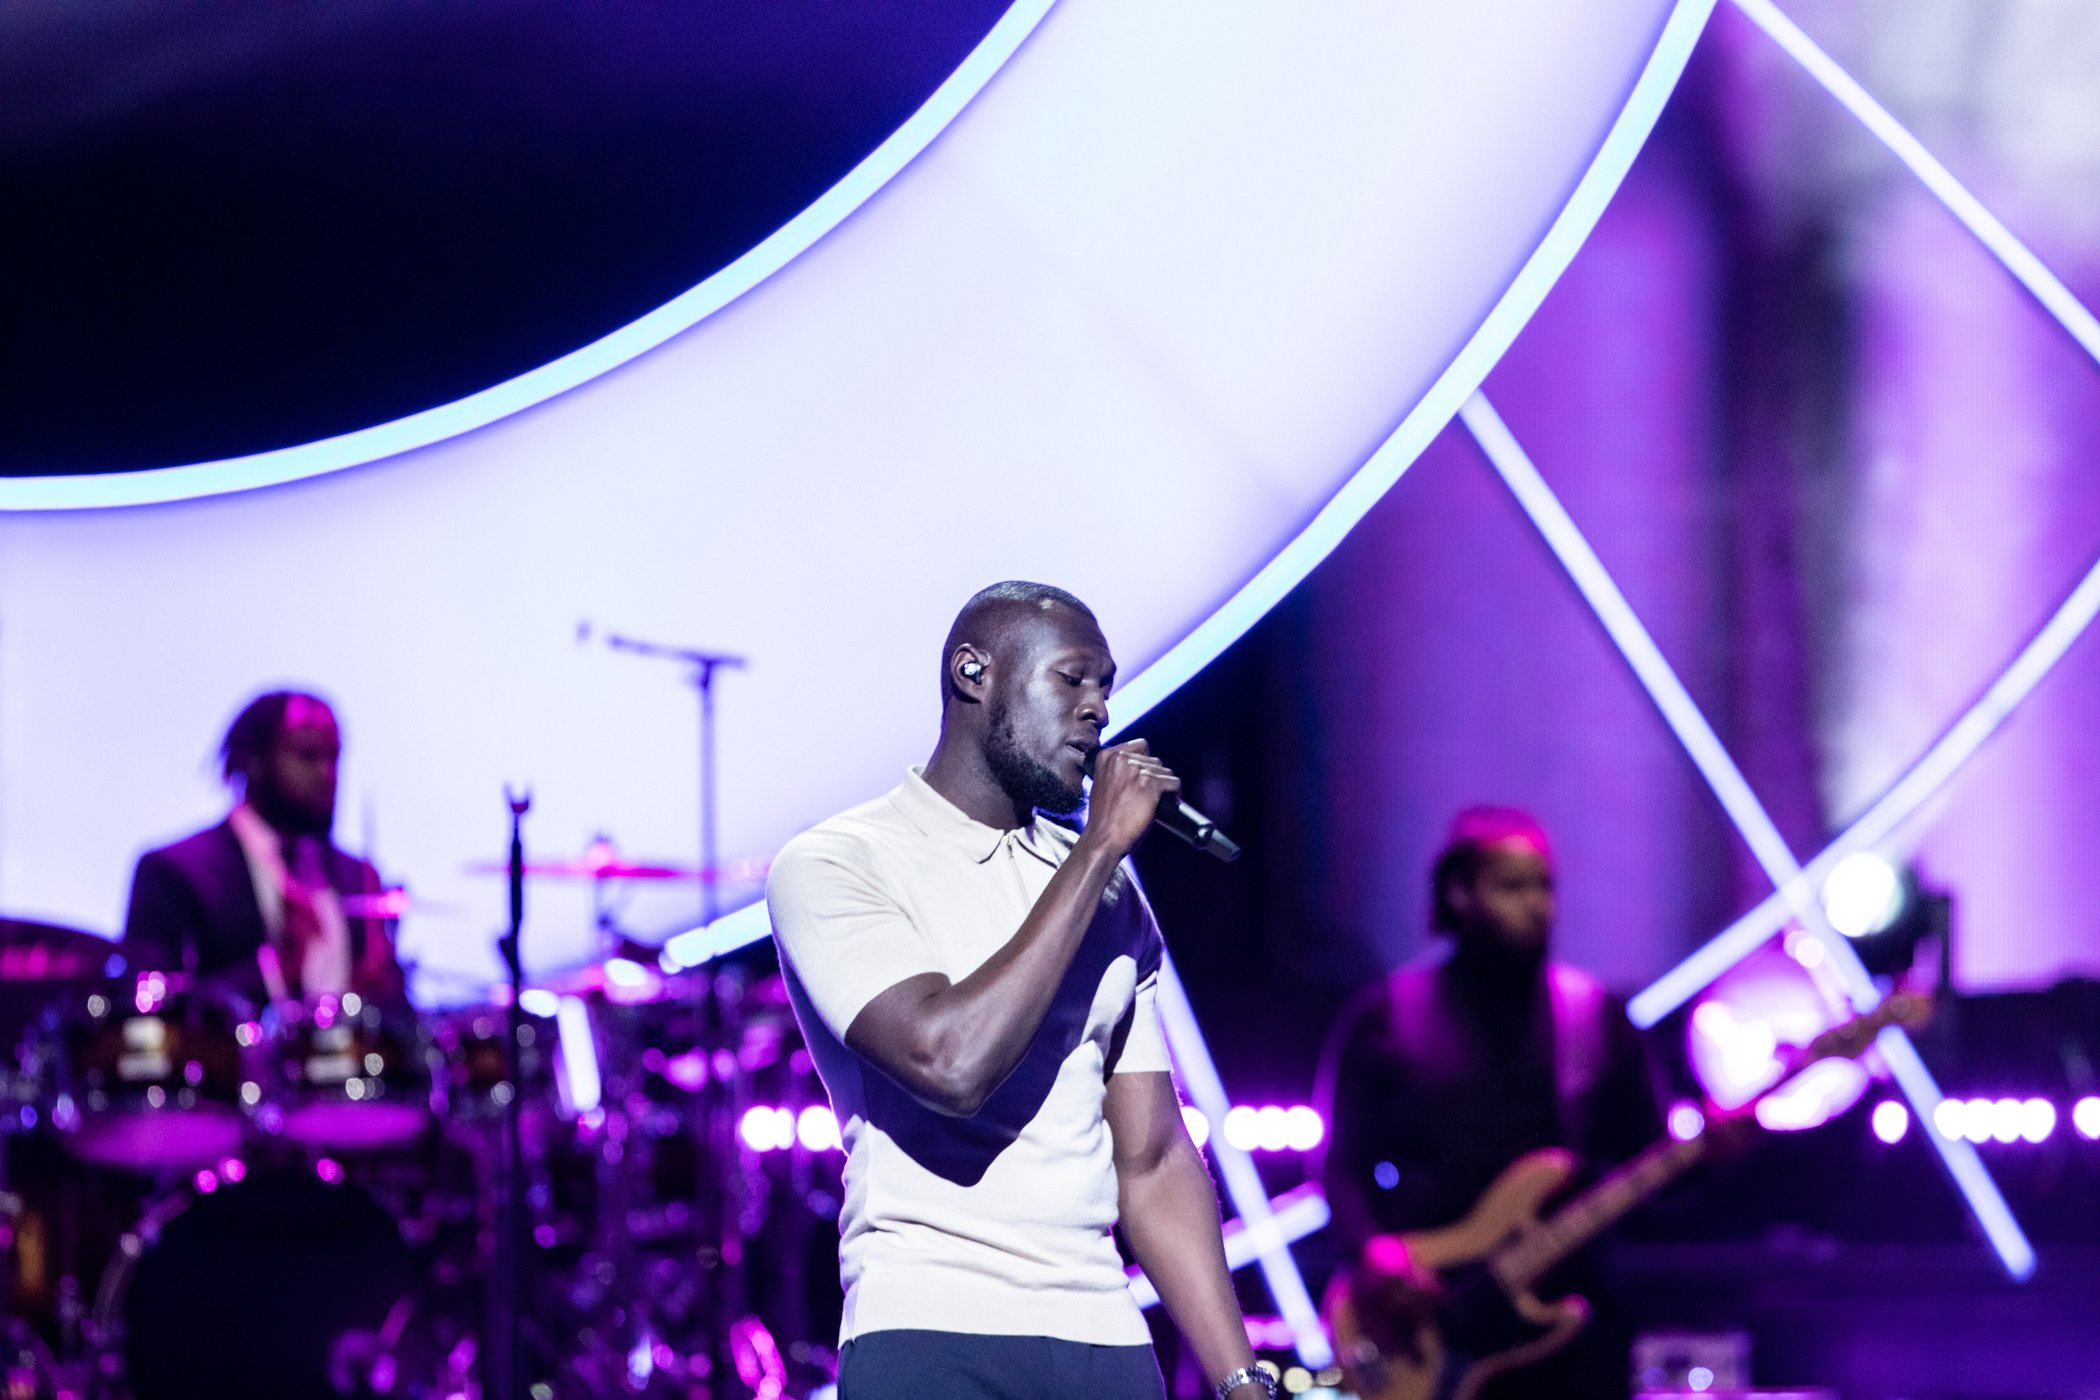 Stormzy beim Global Citizen Prize am 13. Dezember 2019. Bild: Grey Hutton für Global Citizen